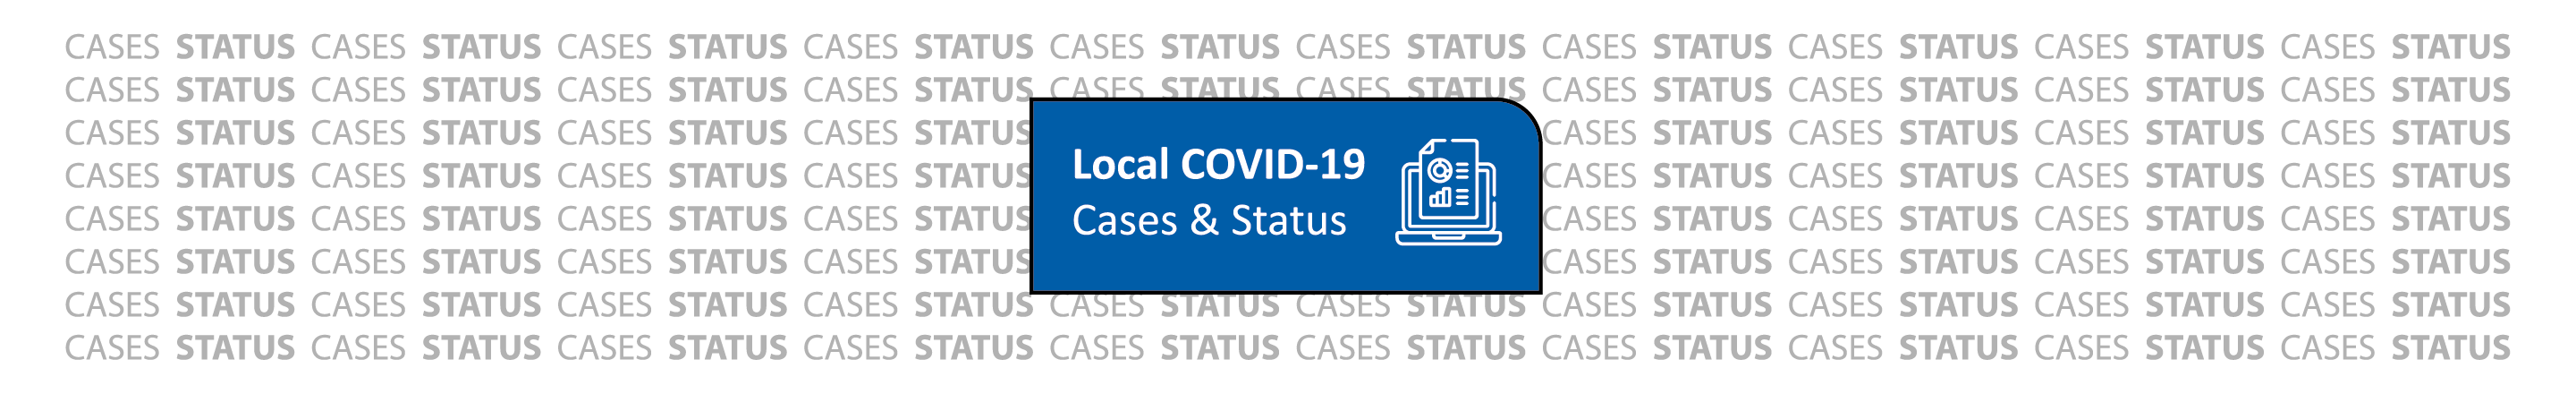 Local COVID-19 Cases and Status